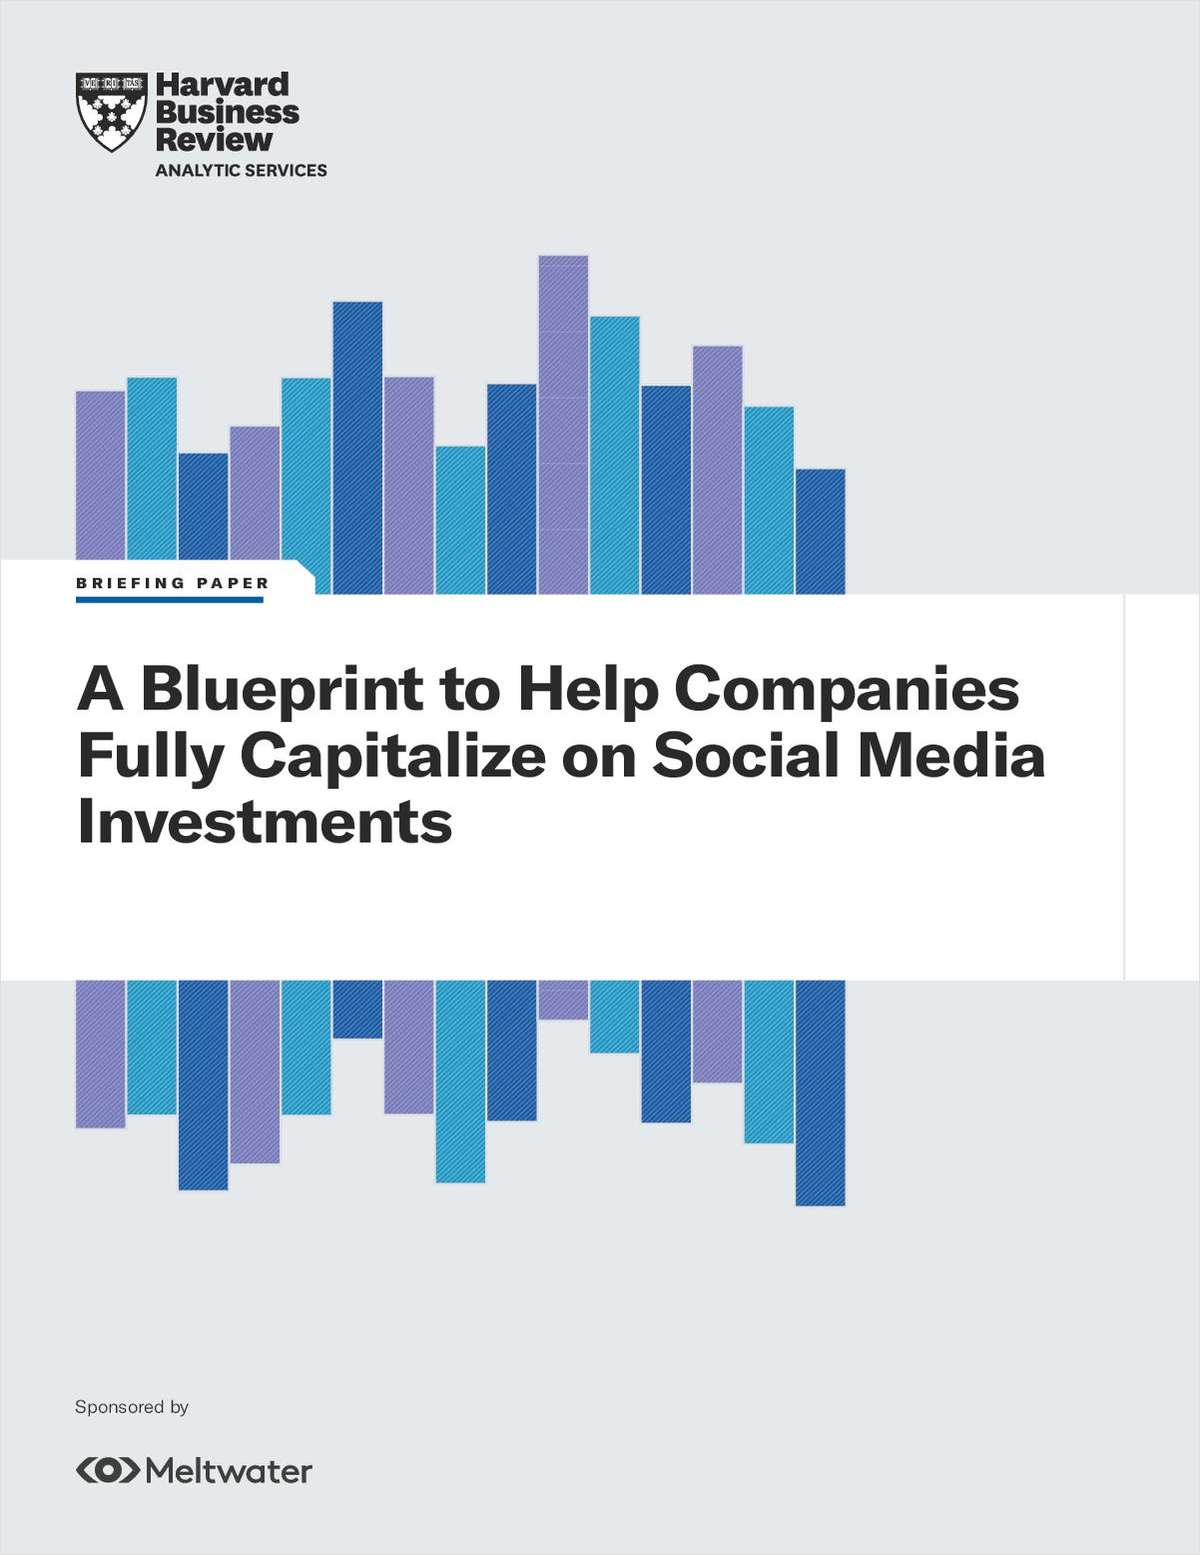 A Blueprint to Help Companies Fully Capitalize on Social Media Investments